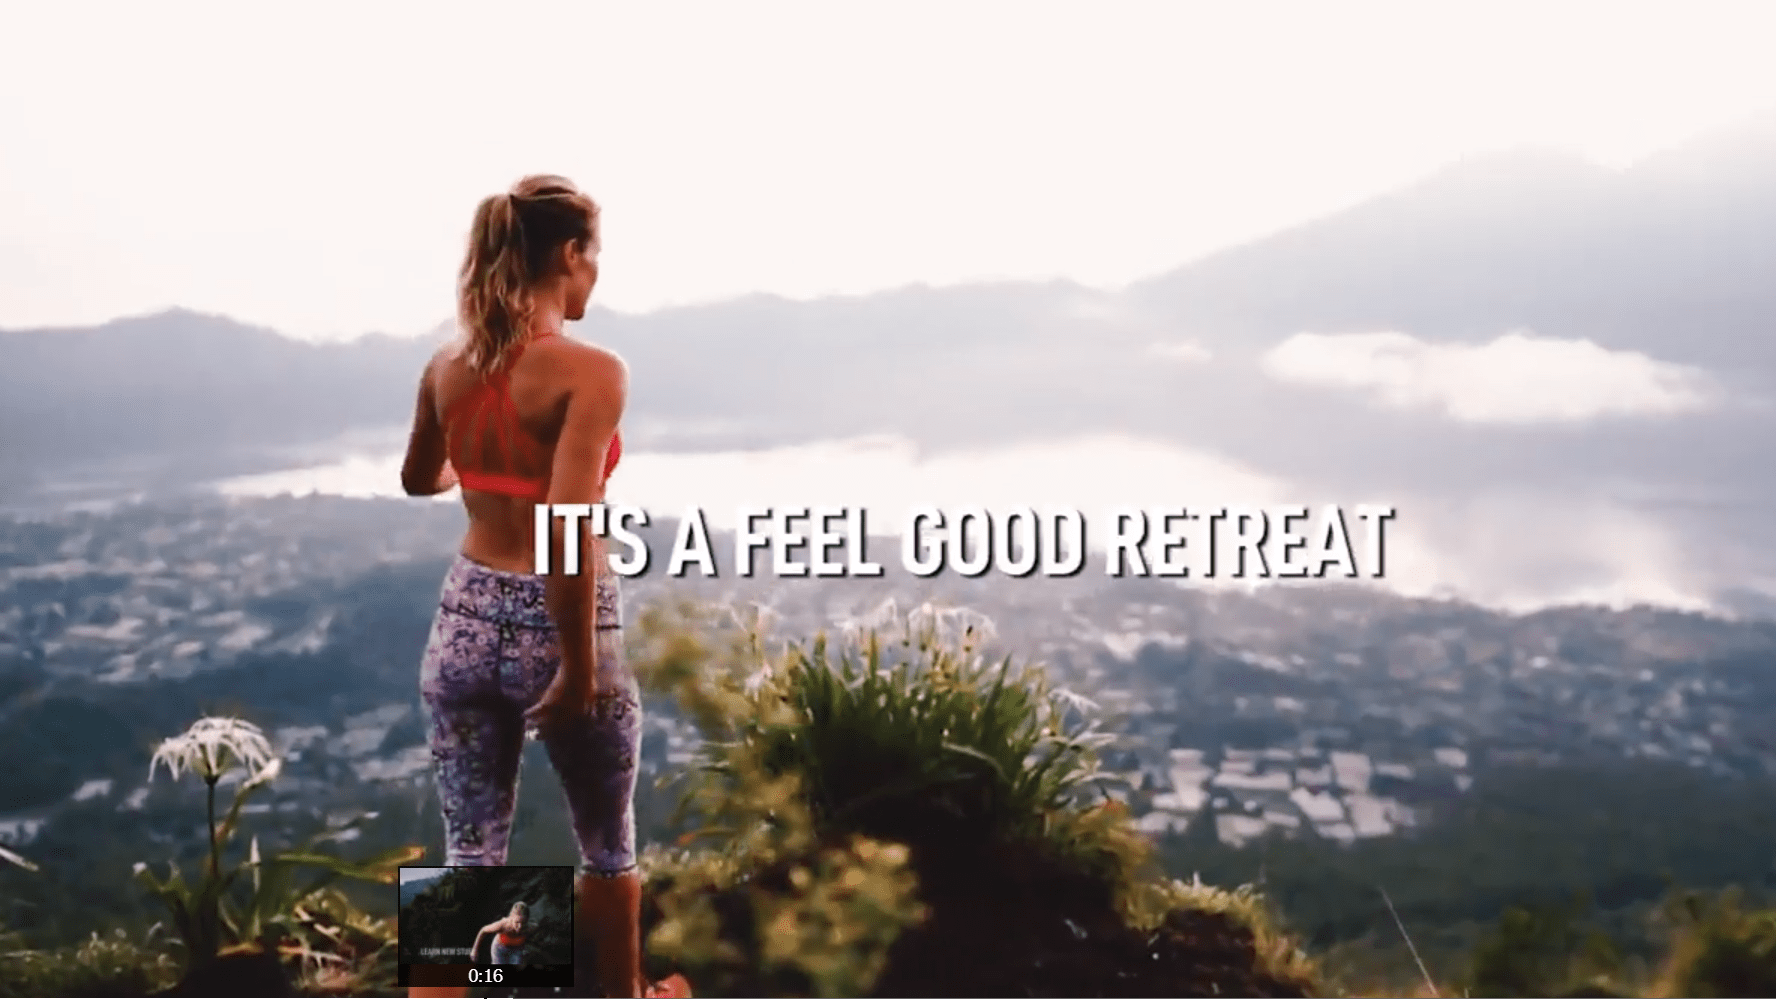 What Are Stoke Retreats?